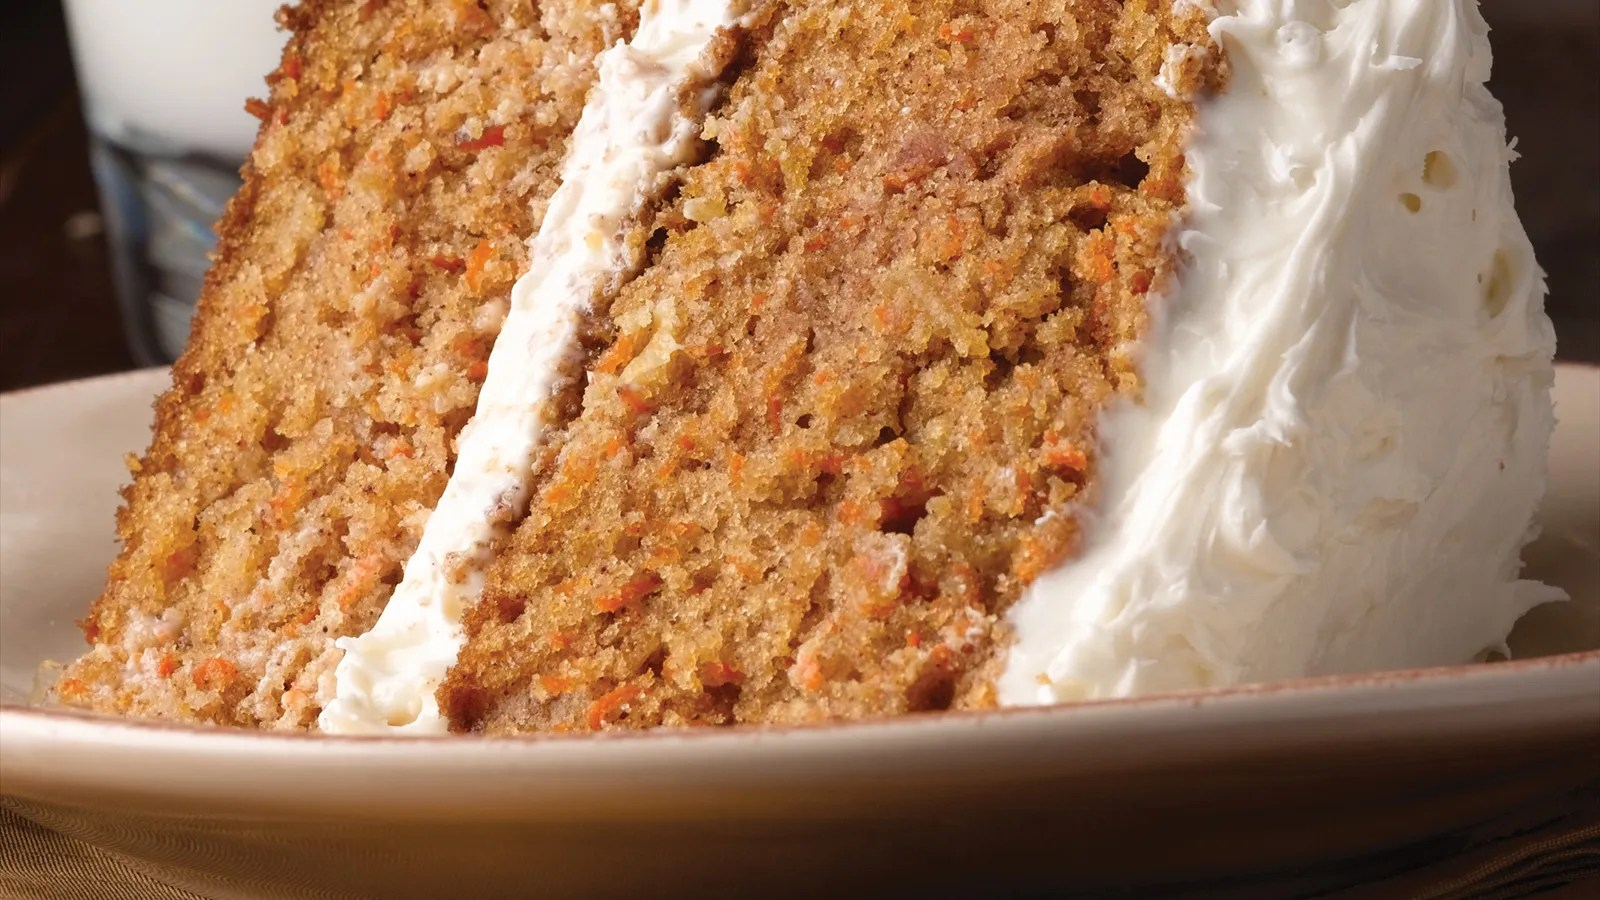 Fresh Market provides recipe for Best Ever Carrot Cake